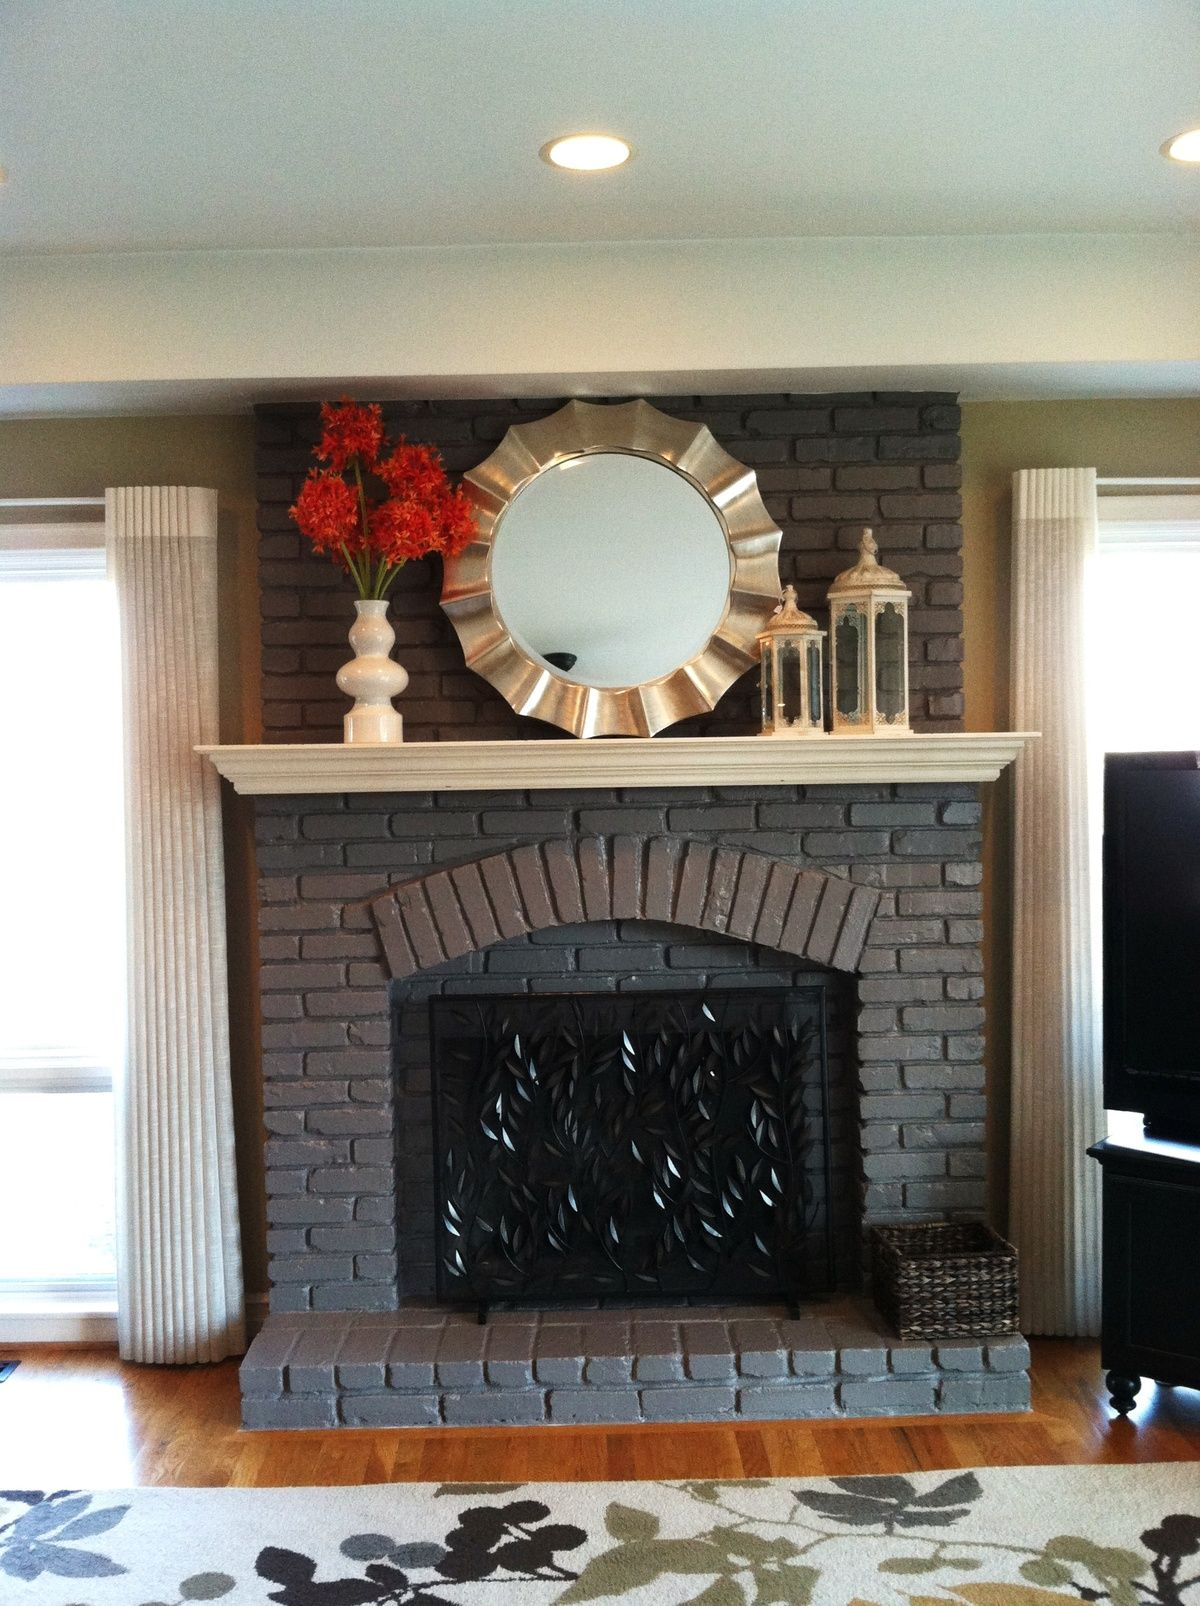 Pin By Irene Alisea On For The House Brick Fireplace